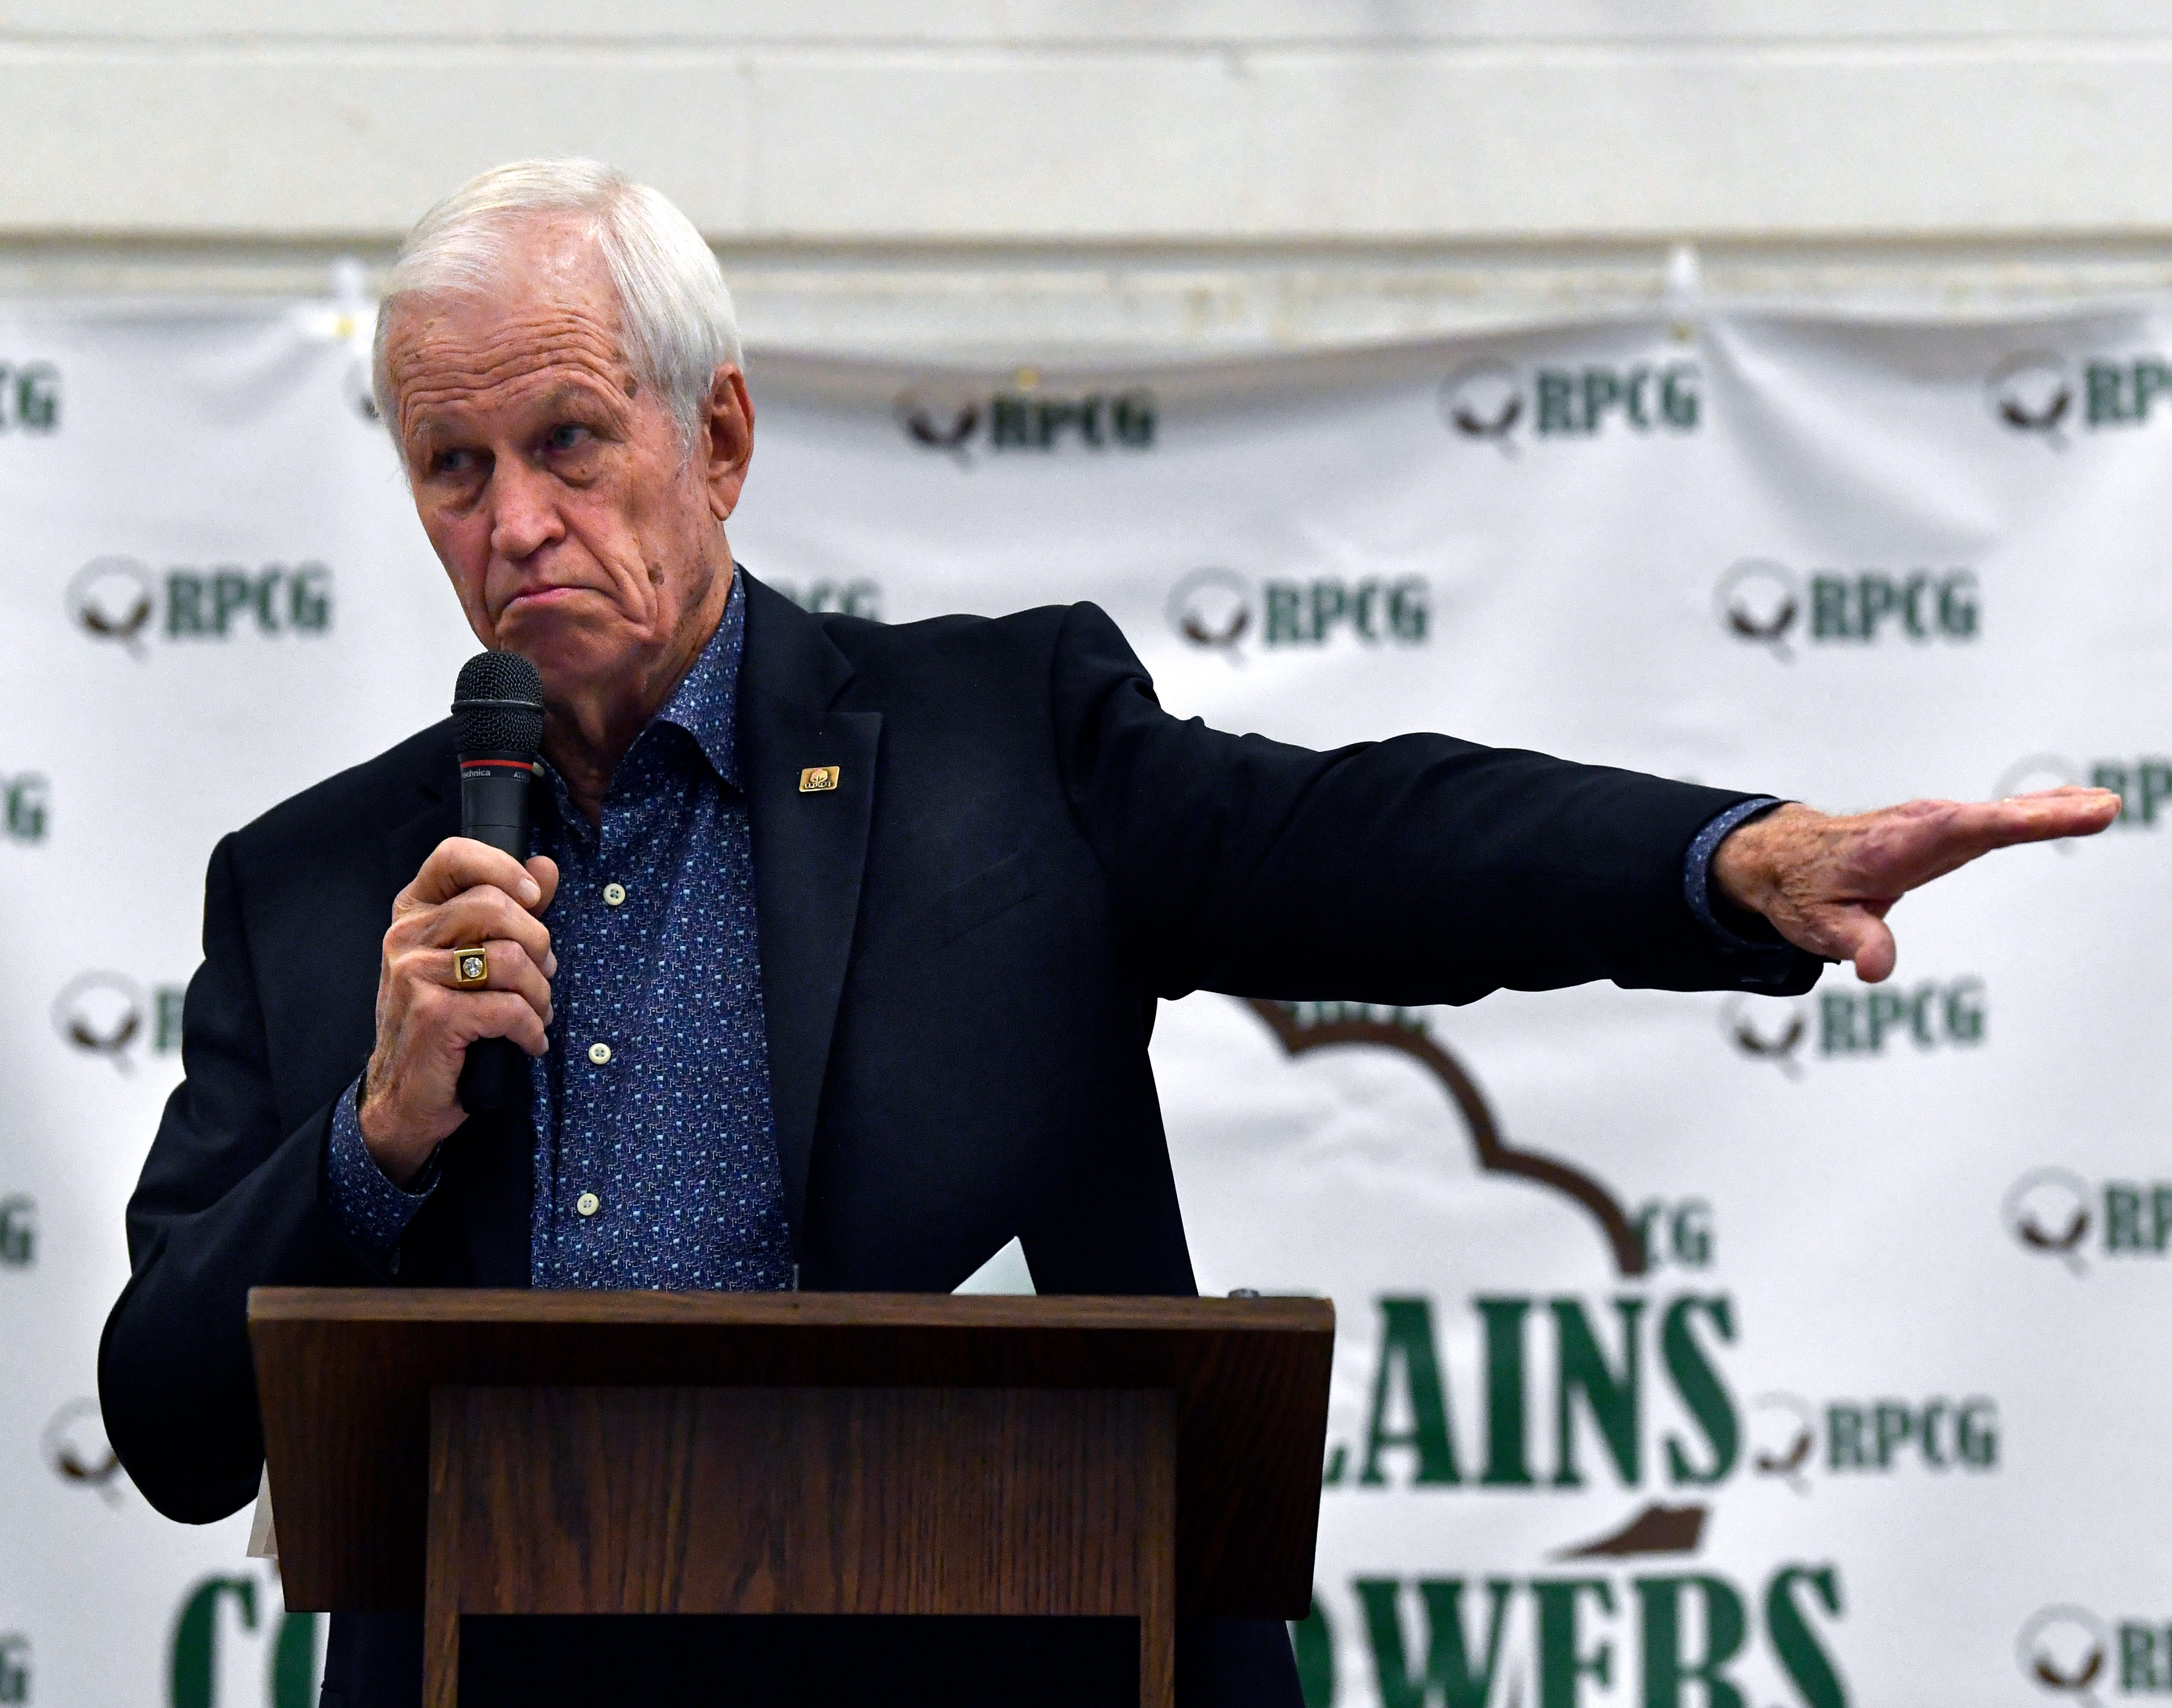 Former 17th Congressional District representative Charlie Stenholm speaks during the Rolling Plains Cotton Growers luncheon Tuesday at the Taylor County Expo Center.